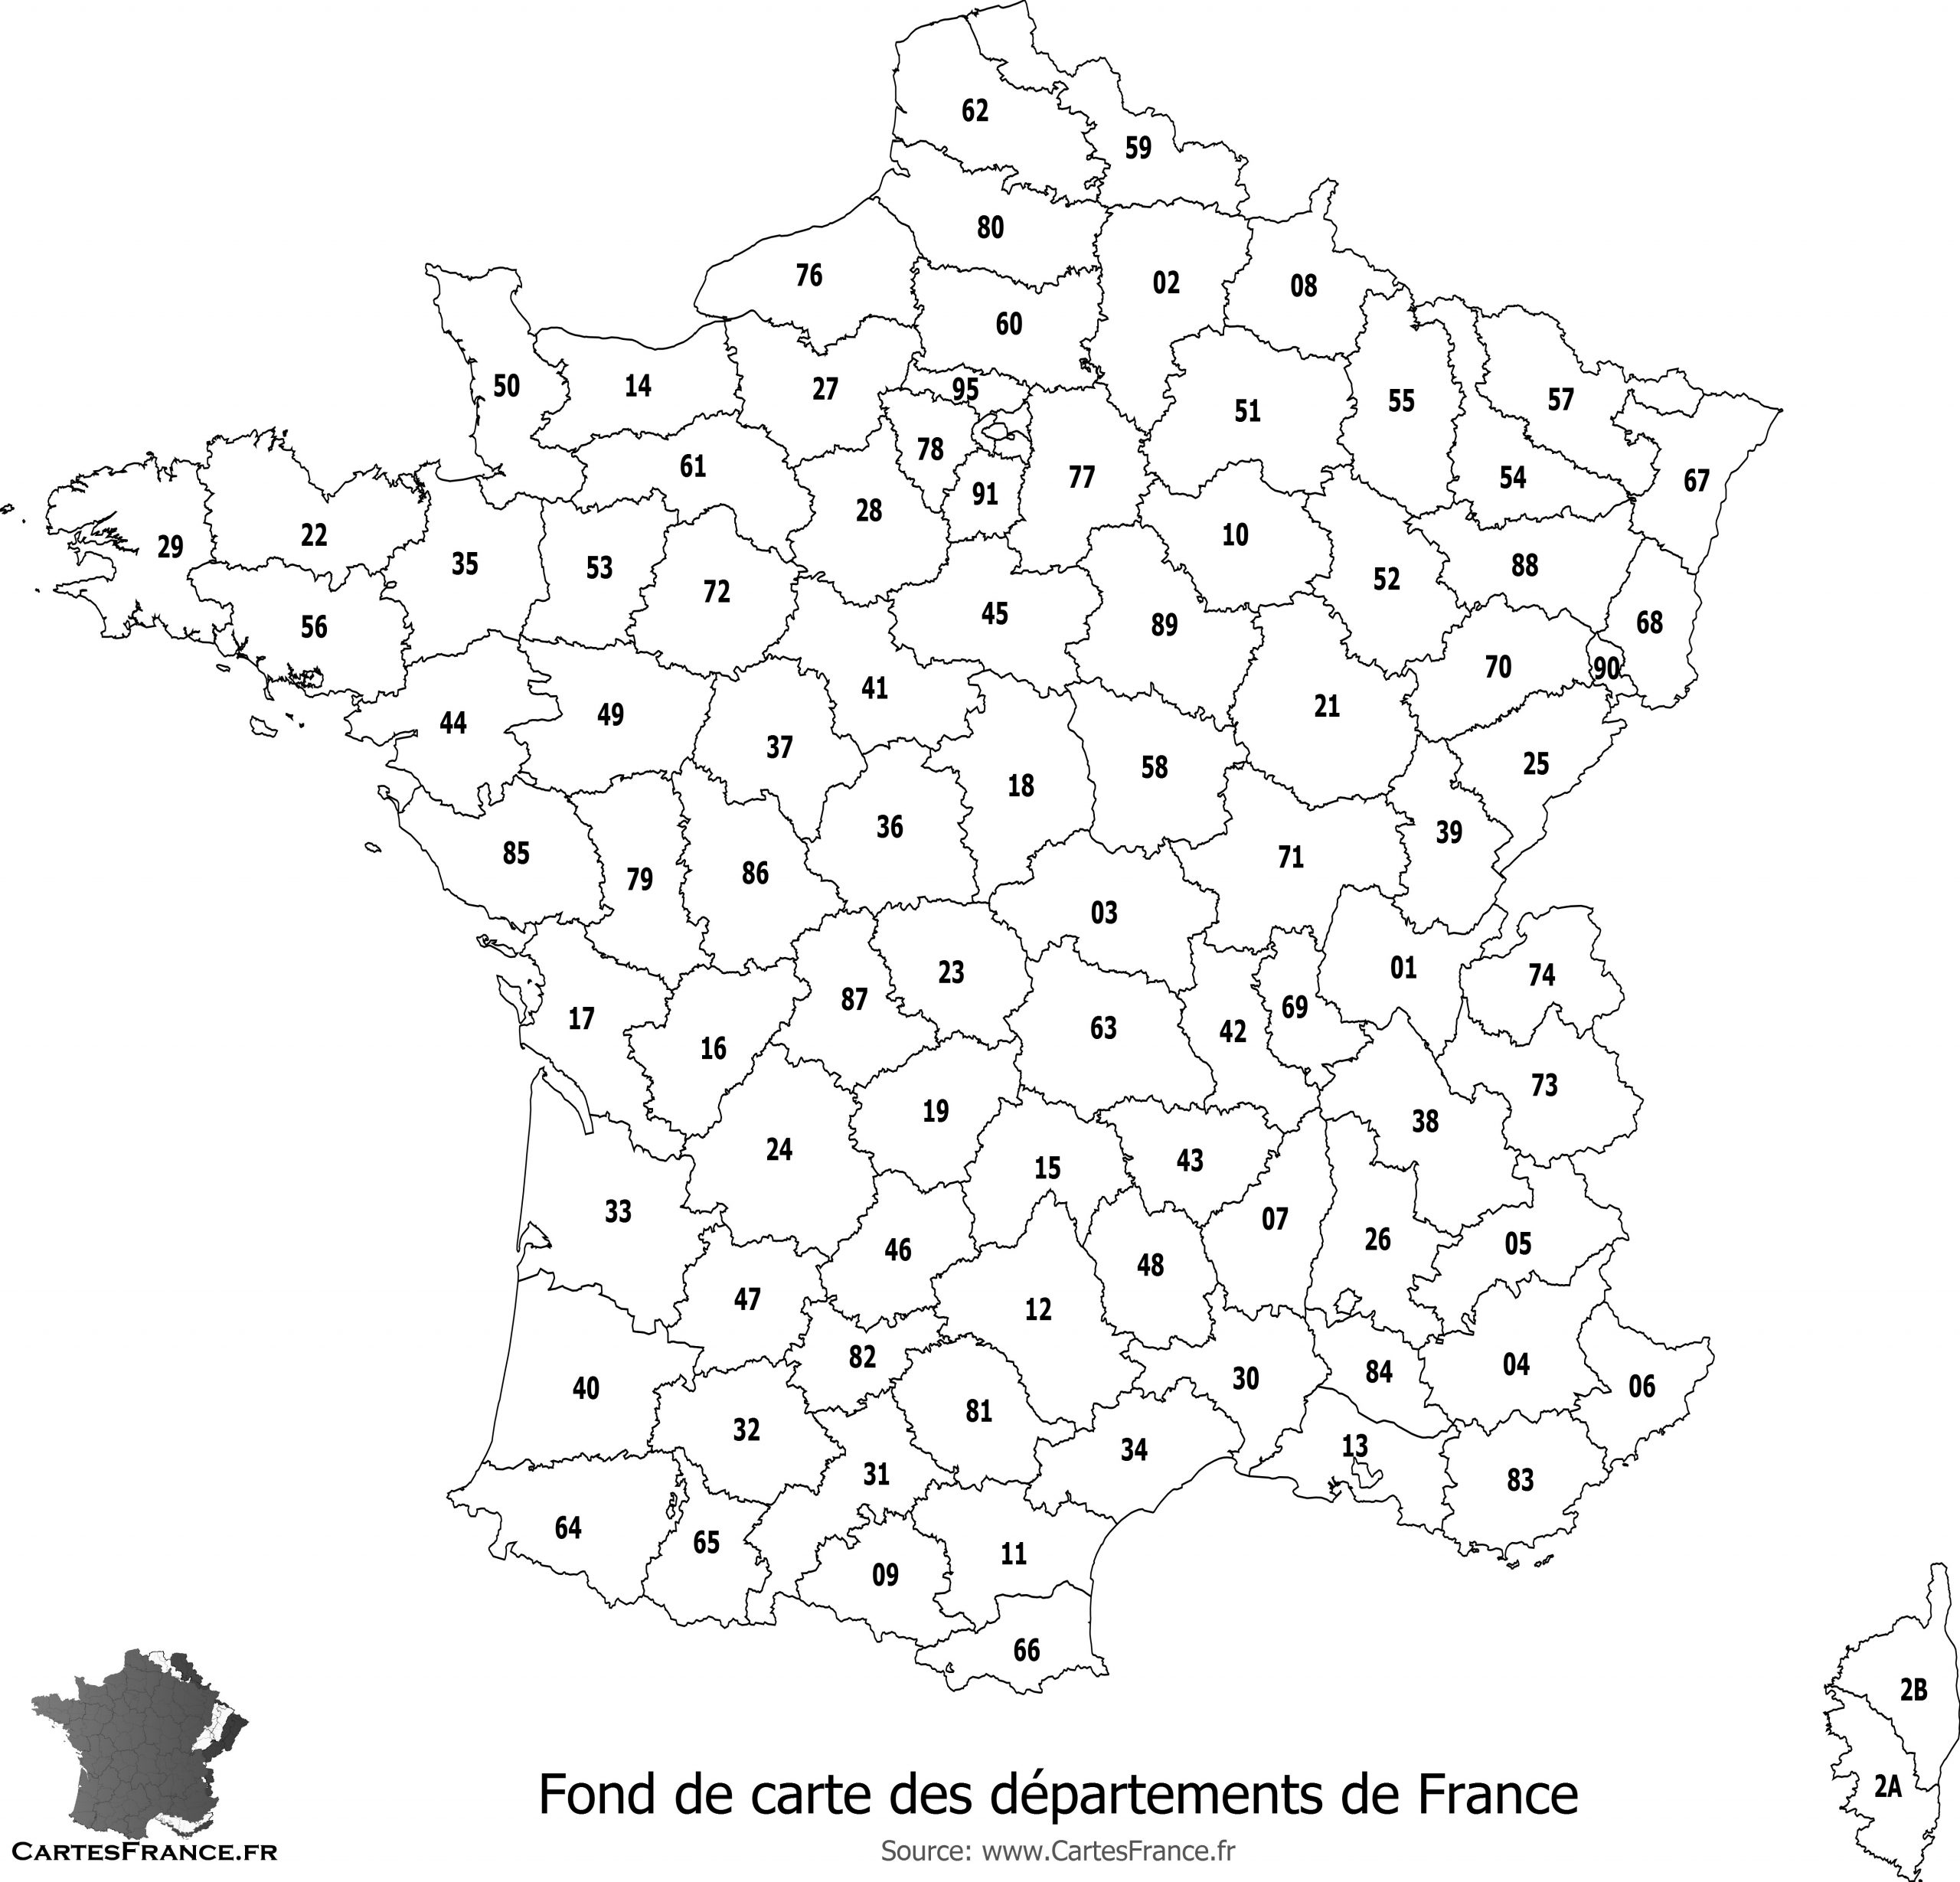 Fond De Carte Des Départements De France à Carte Région France Vierge